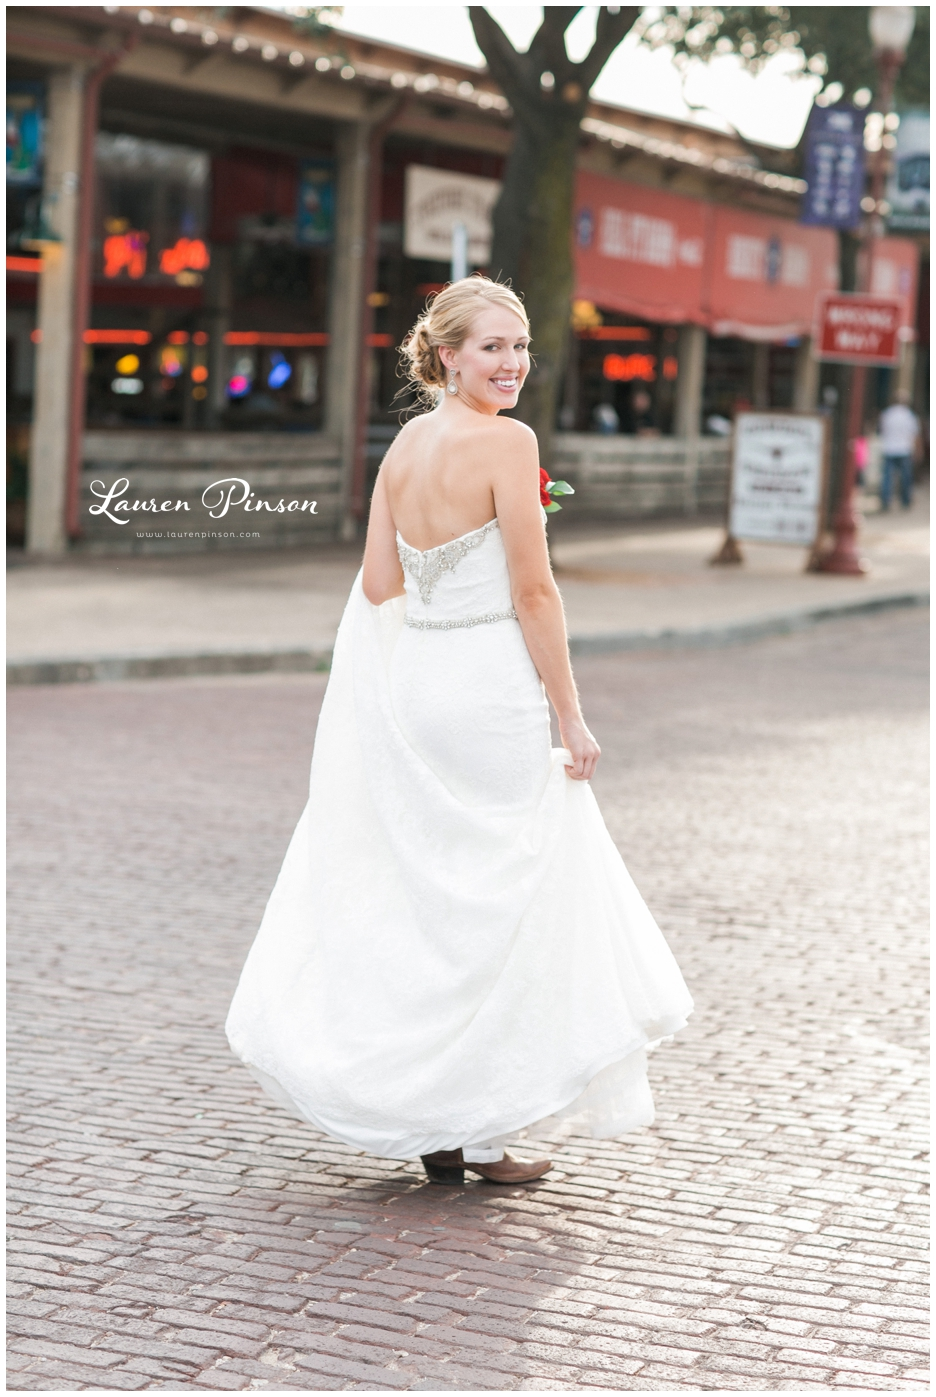 fort-worth-bridal-session-at-the-stockyards-fort-worth-wedding-photographer-wichita-falls-wedding-photographer_1324.jpg